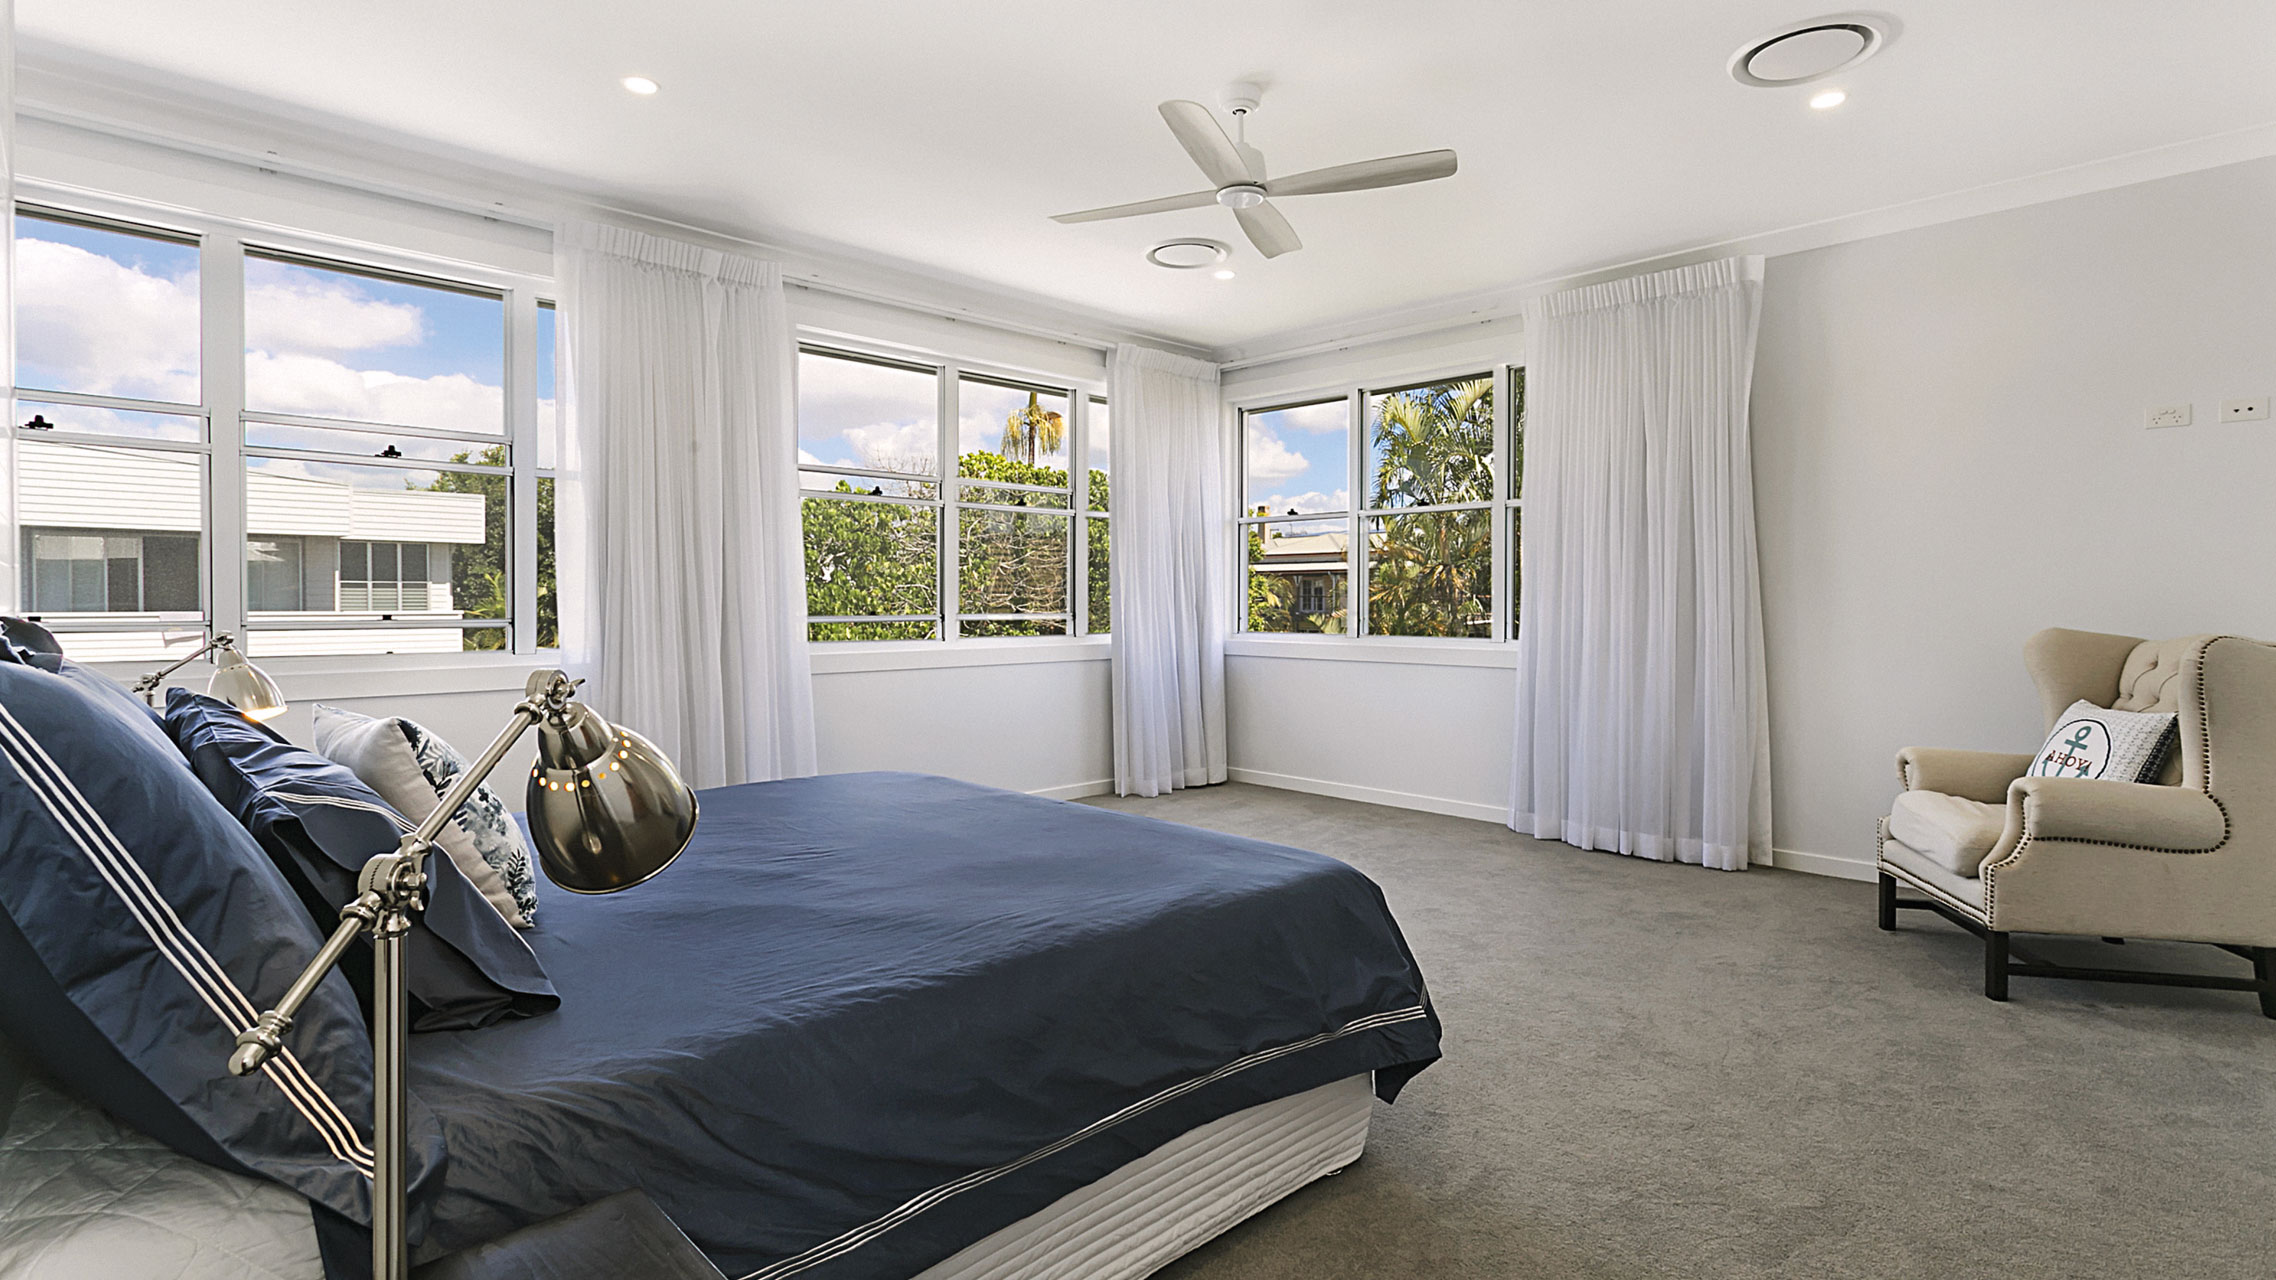 White Double Hung Windows in a bedroom